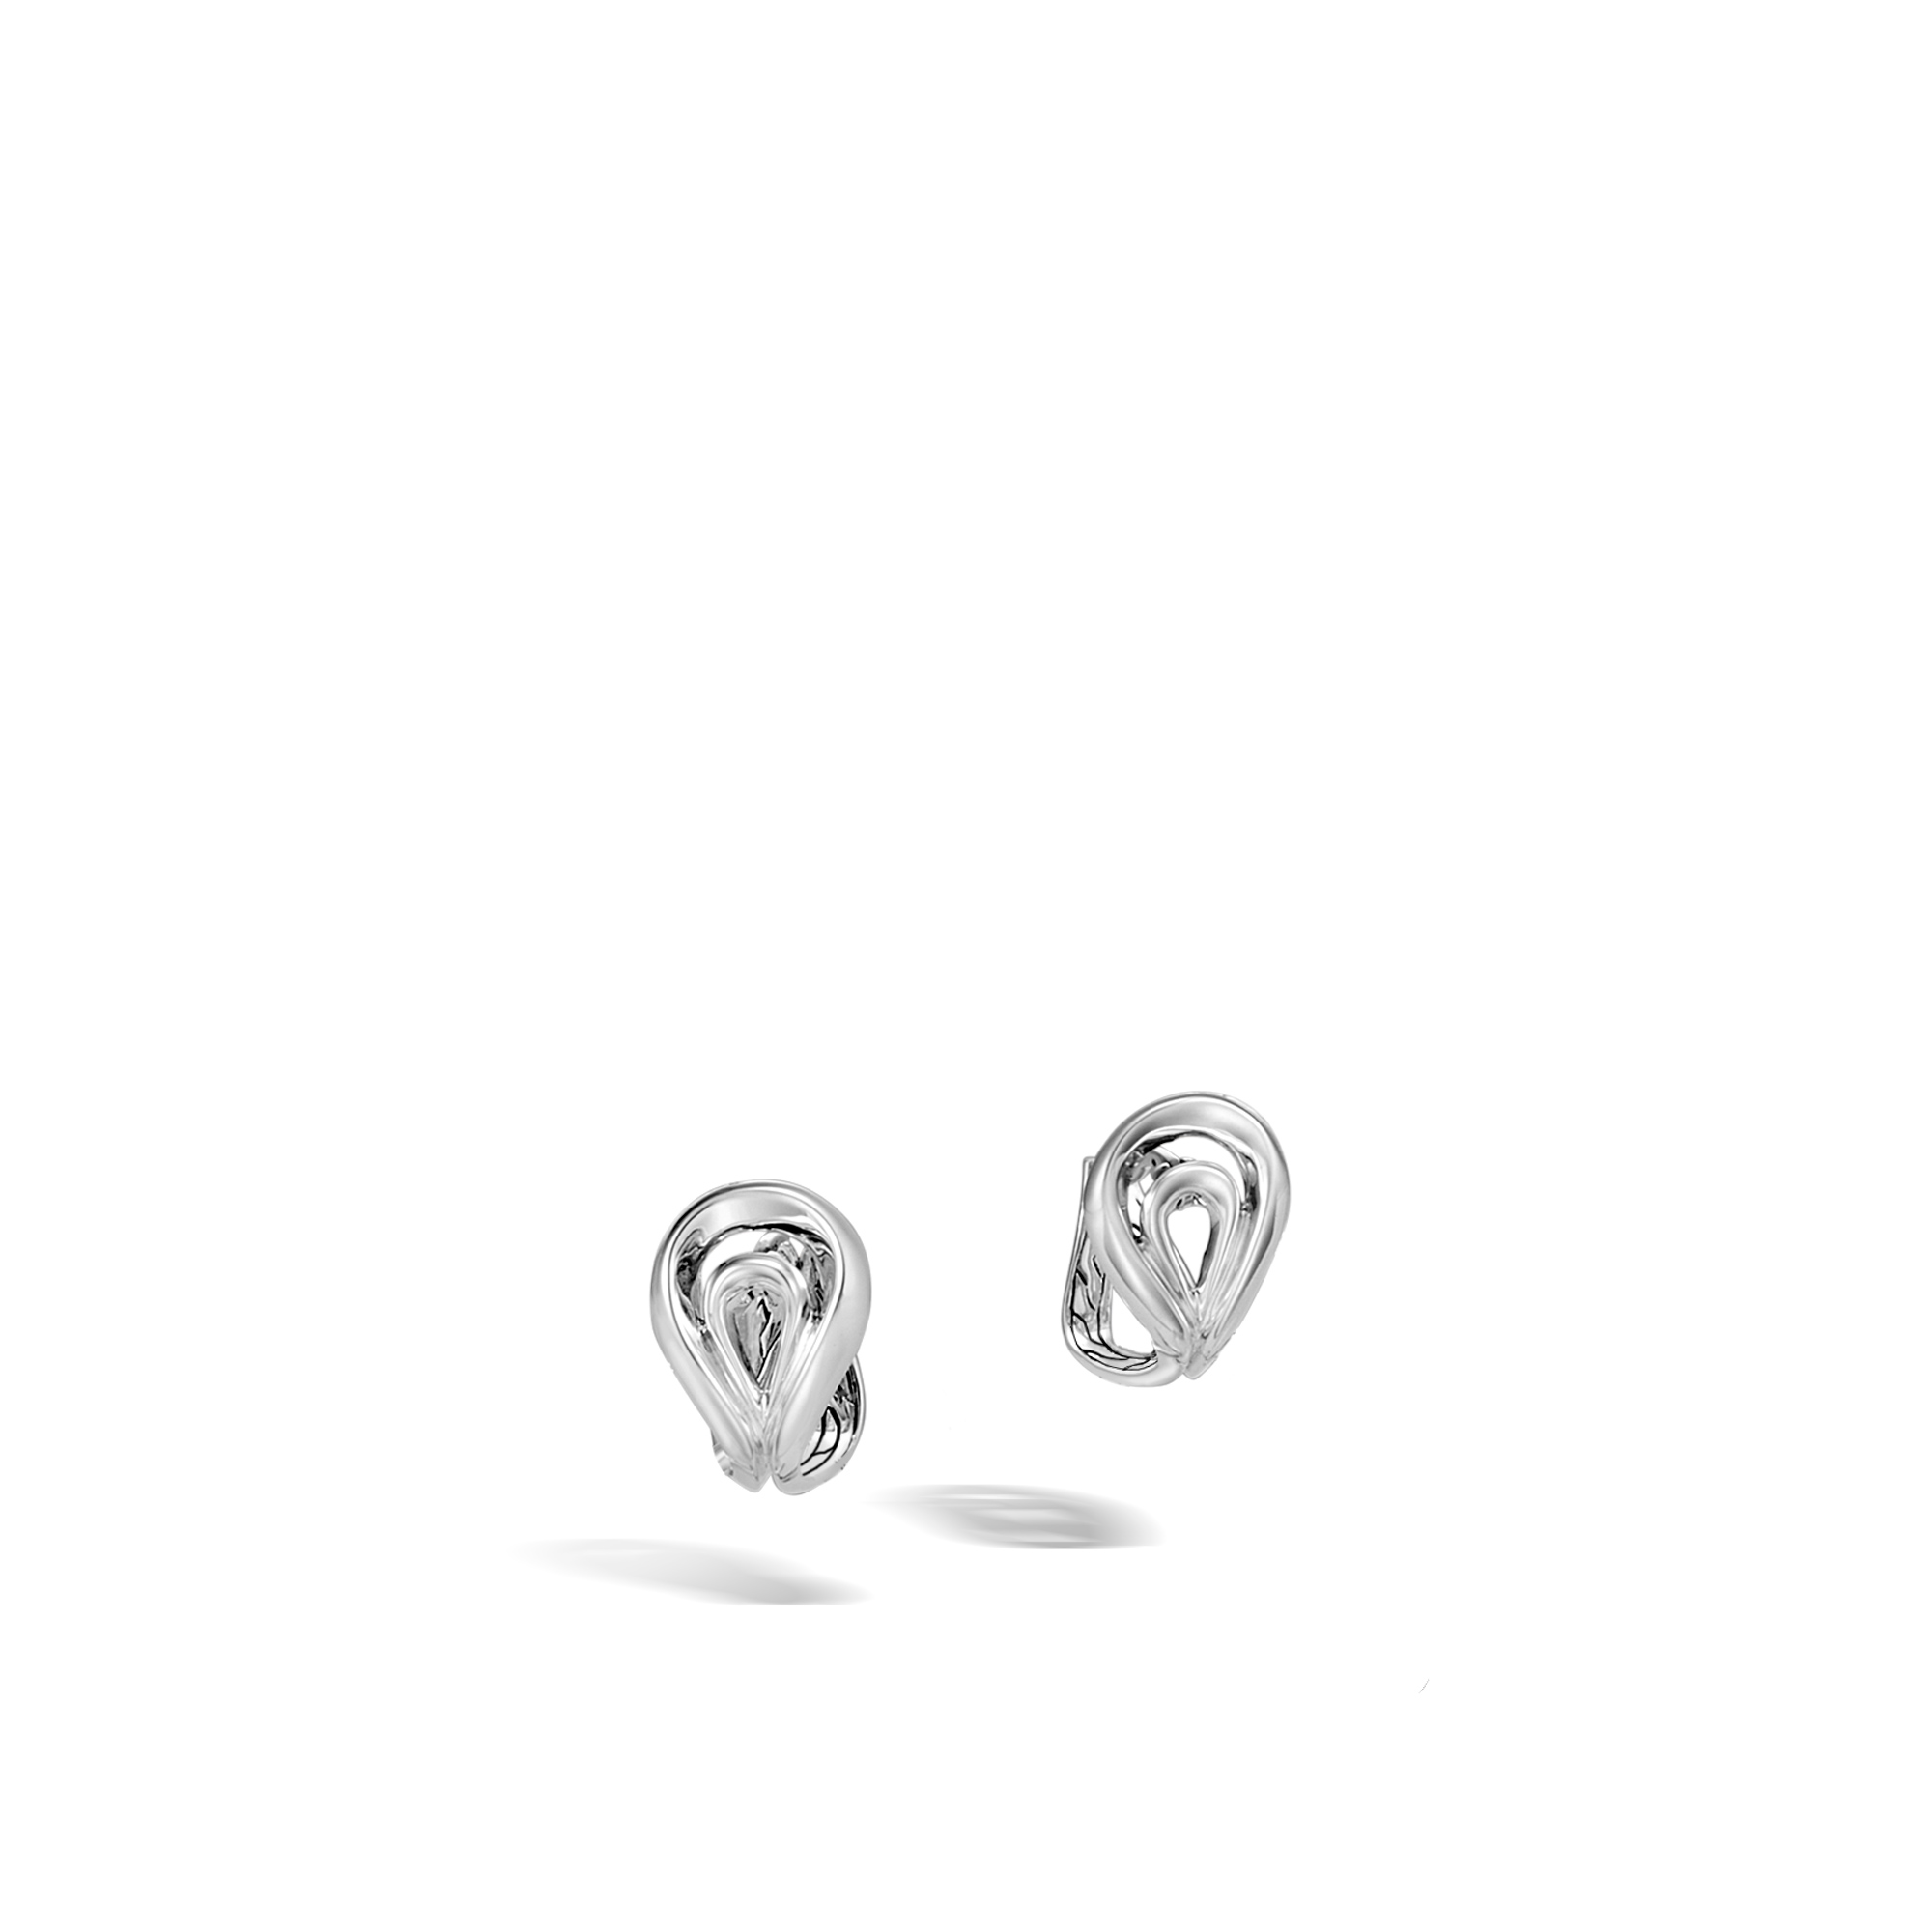 Asli Classic Chain Link Drop Earring in Silver, , large